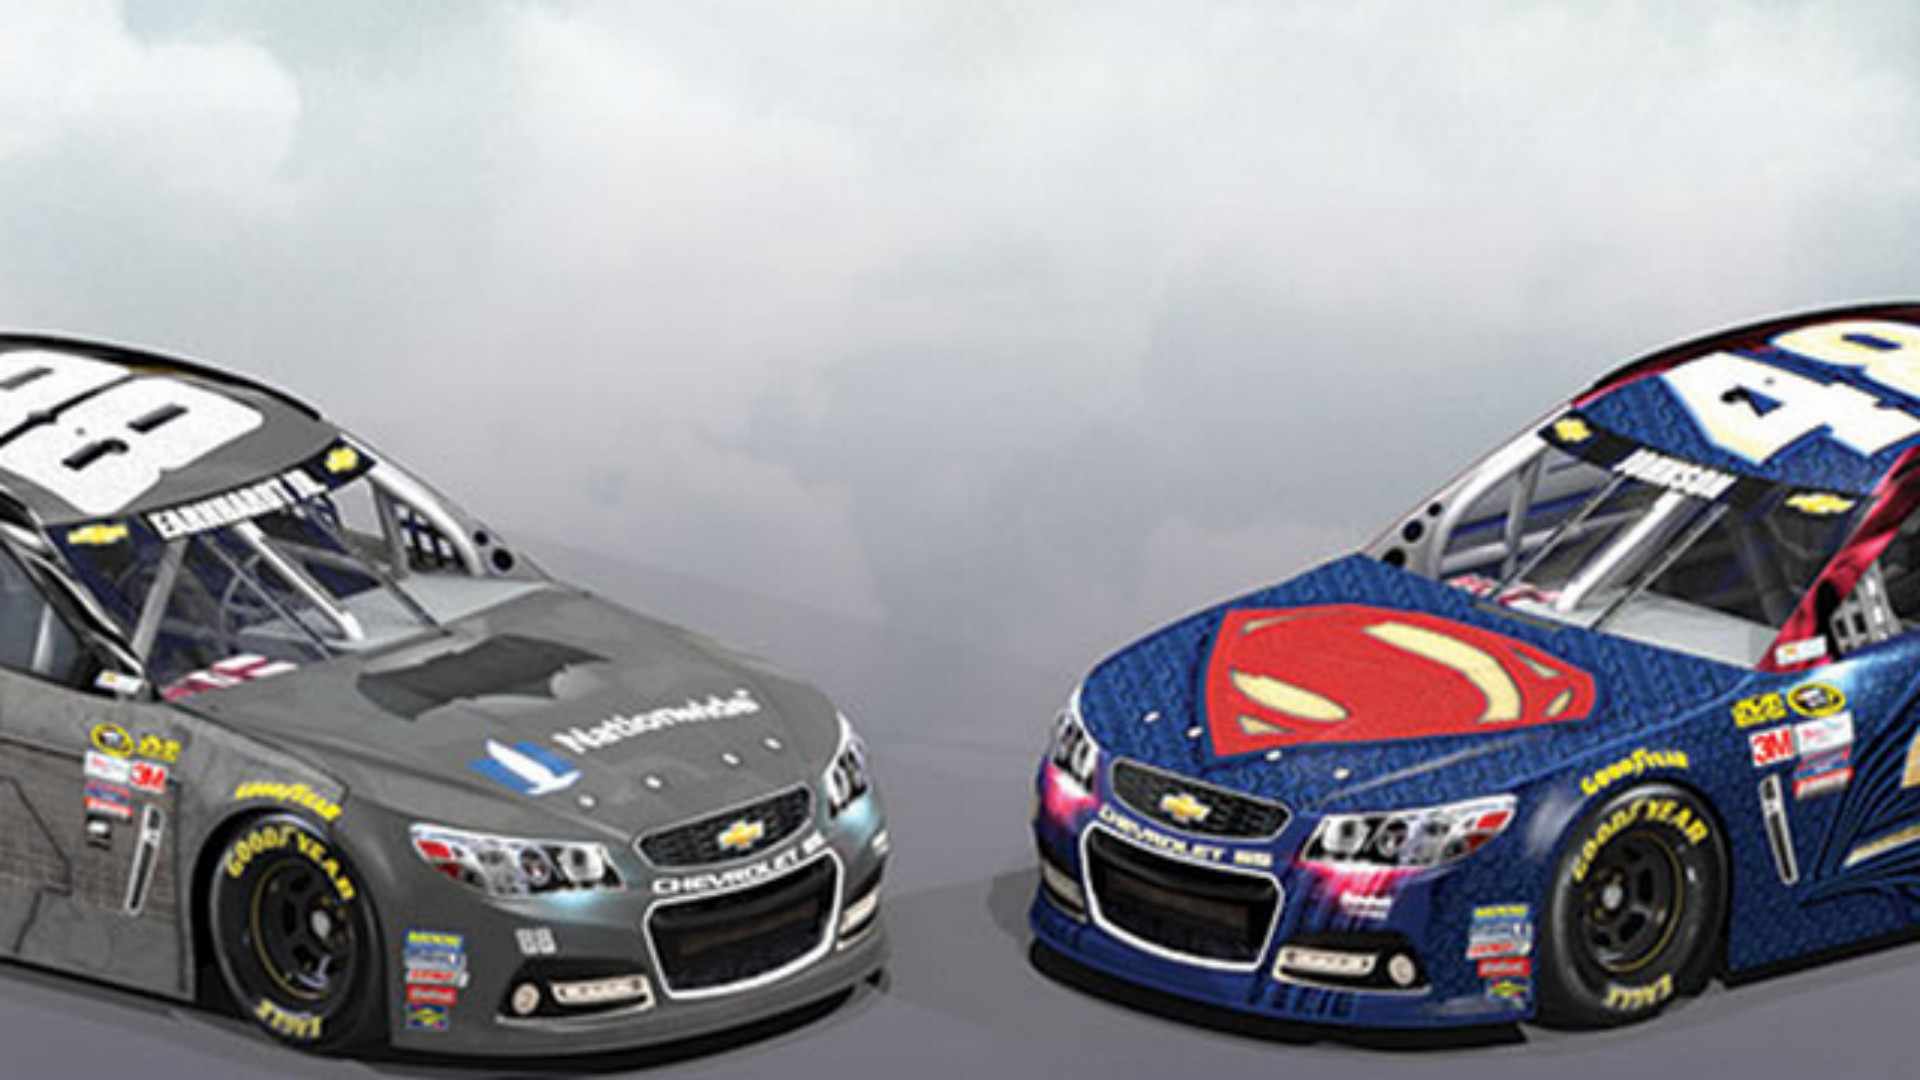 Dale Earnhardt Jr., Jimmie Johnson reveal epic 'Batman vs. Superman' paint  schemes | NASCAR | Sporting News